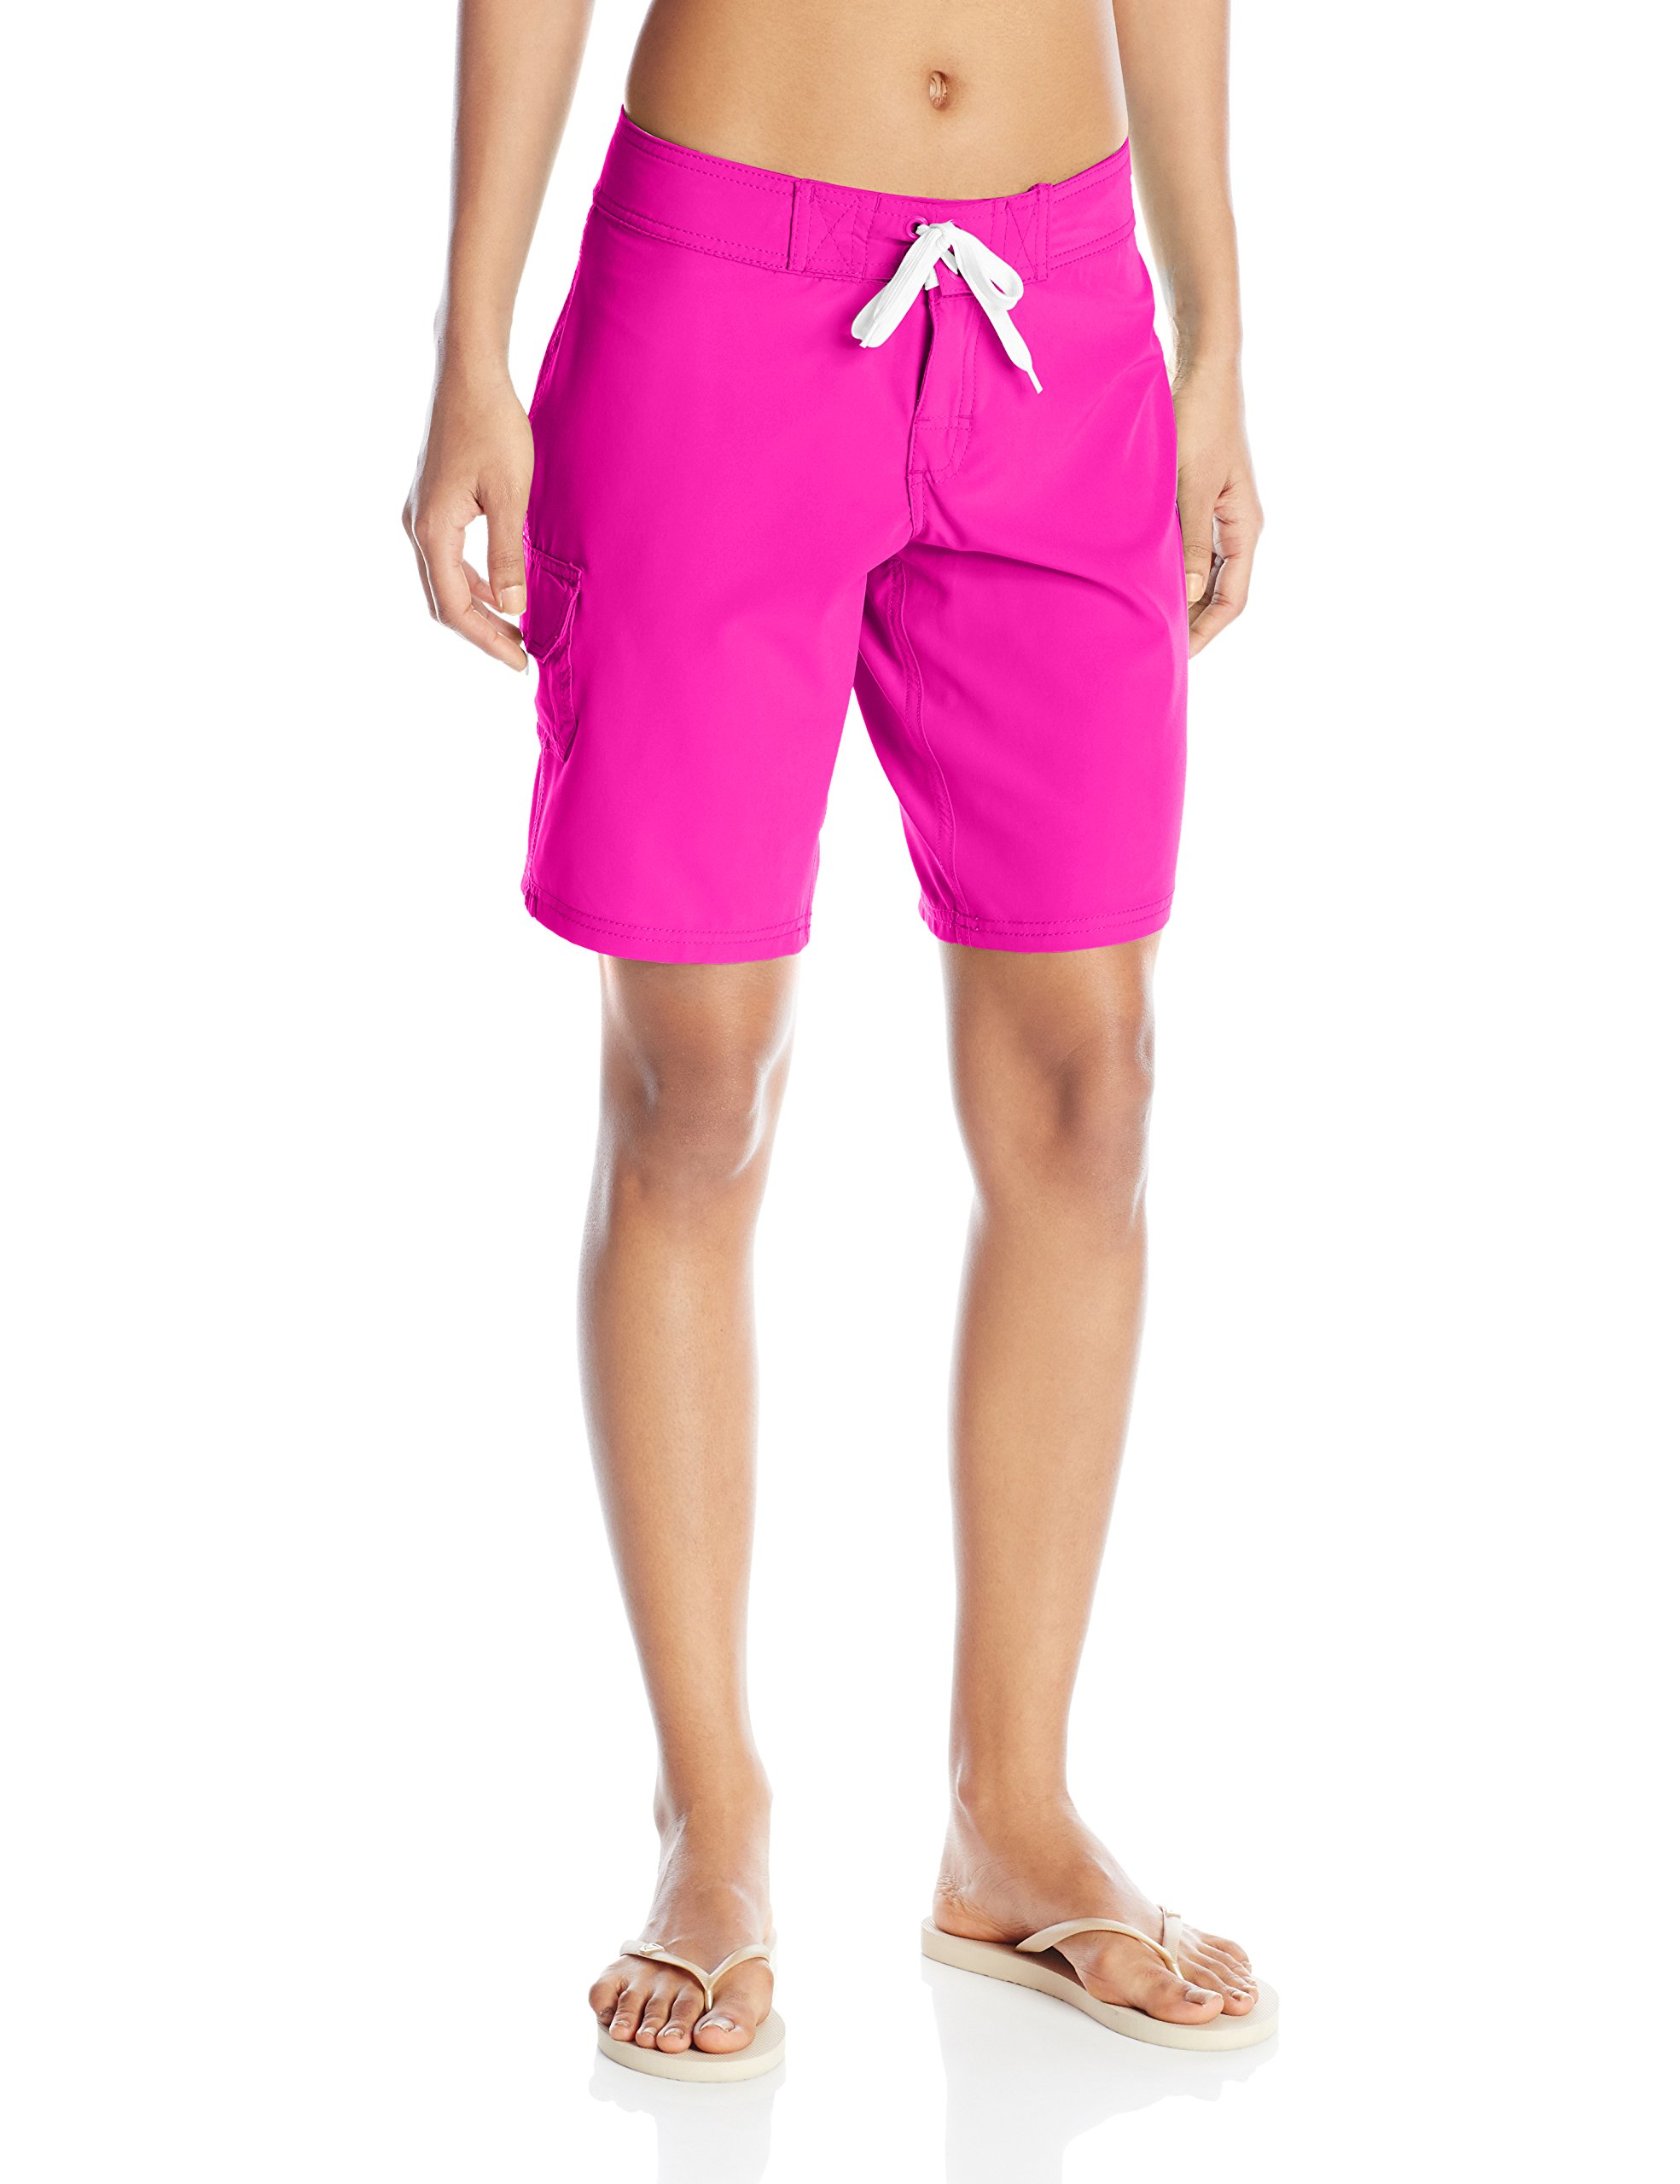 Kanu Surf Women's Marina Solid Stretch Boardshort, Pink, 14